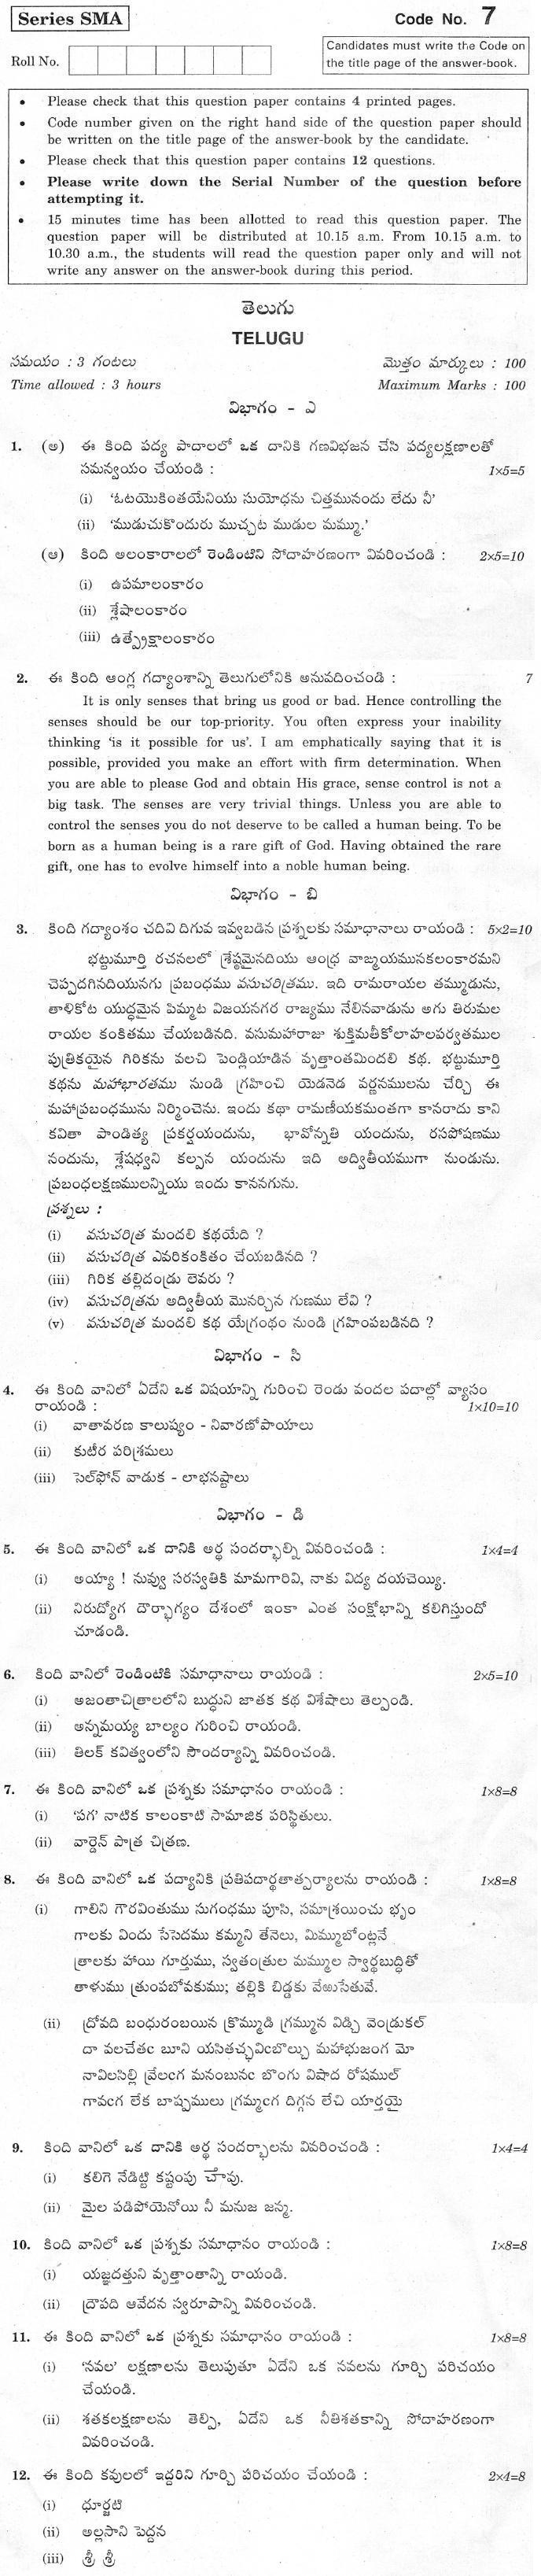 CBSE Class XII Previous Year Question Paper 2012 Telugu